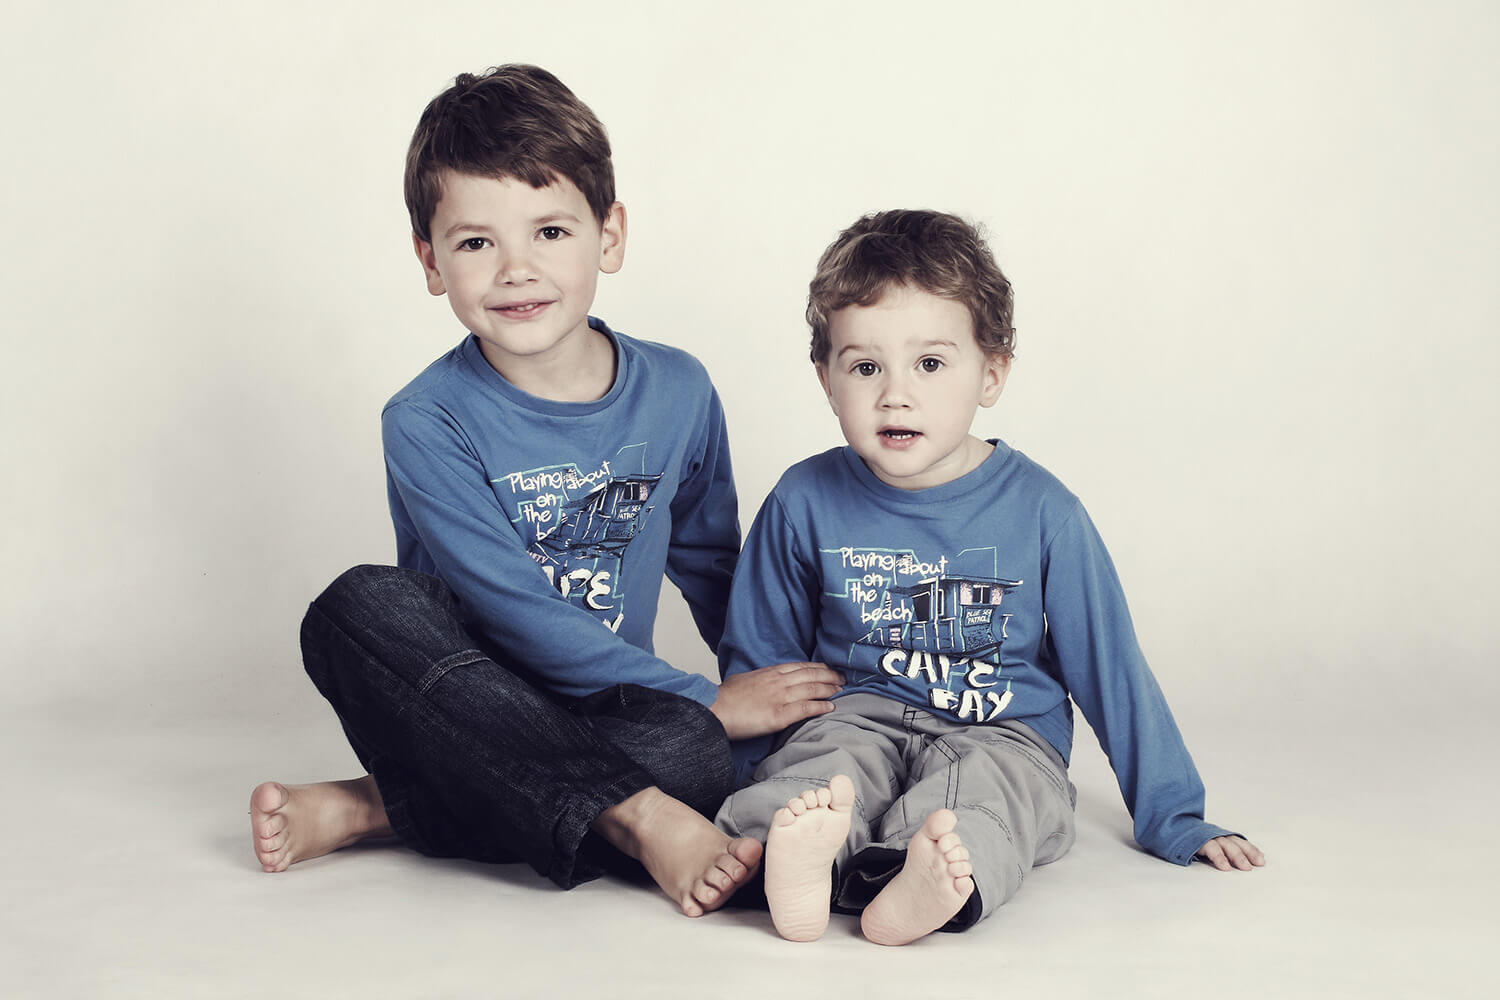 family photo of two sitting brothers with blue T-shirts on a light background